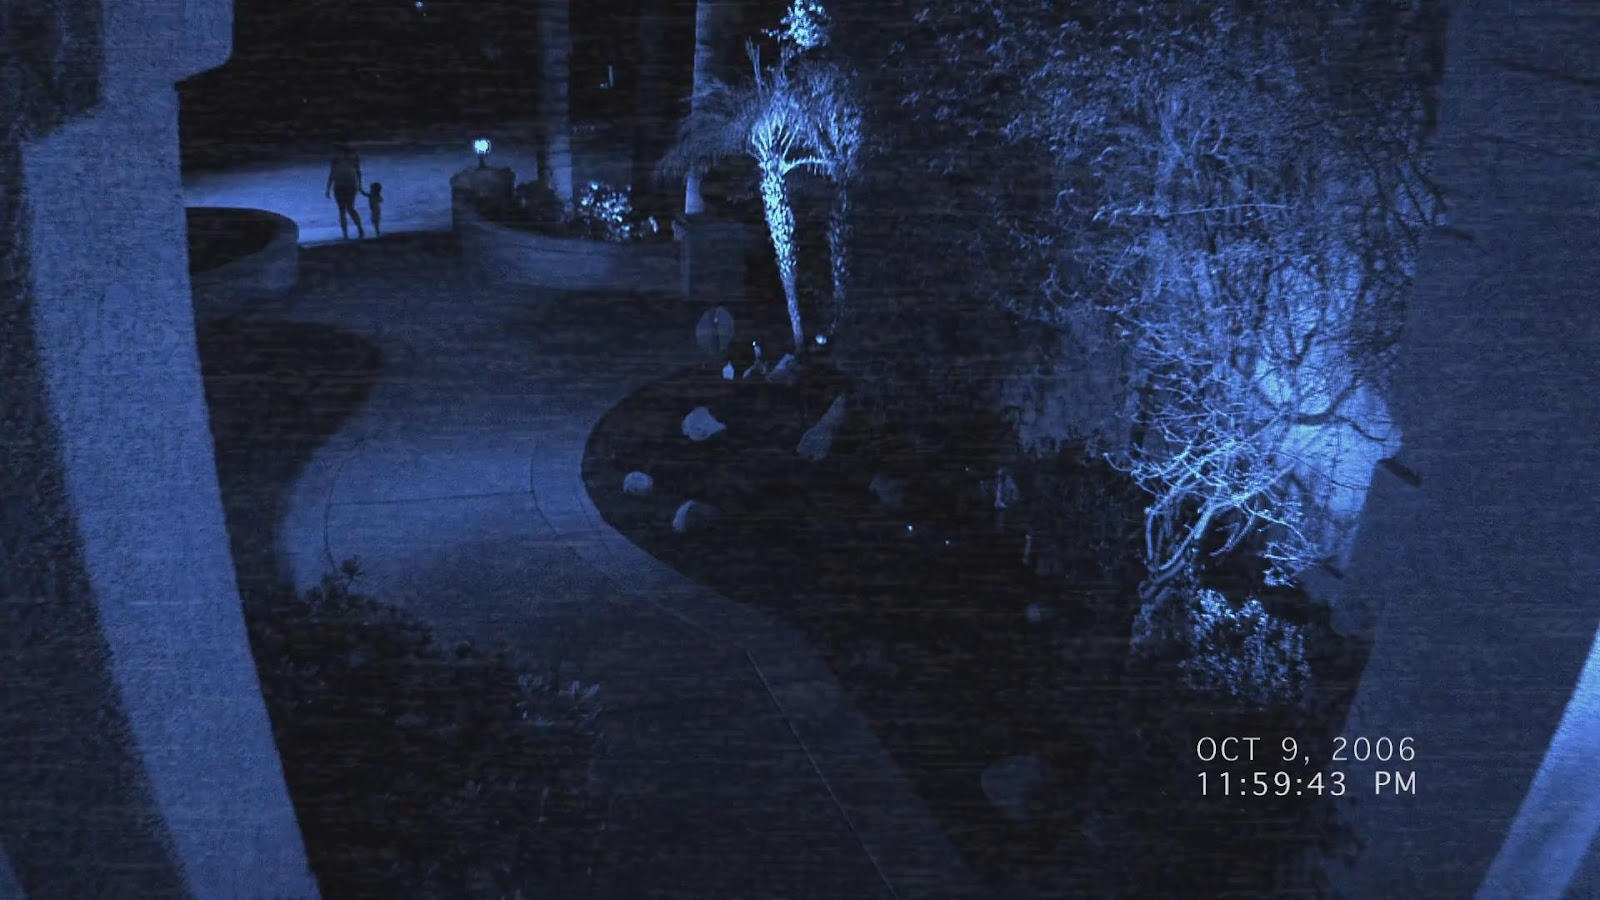 Paranormal+Activity+4+hd+wallpapers+%284%29 Paranormal Activity 4 Fragmanı İzle